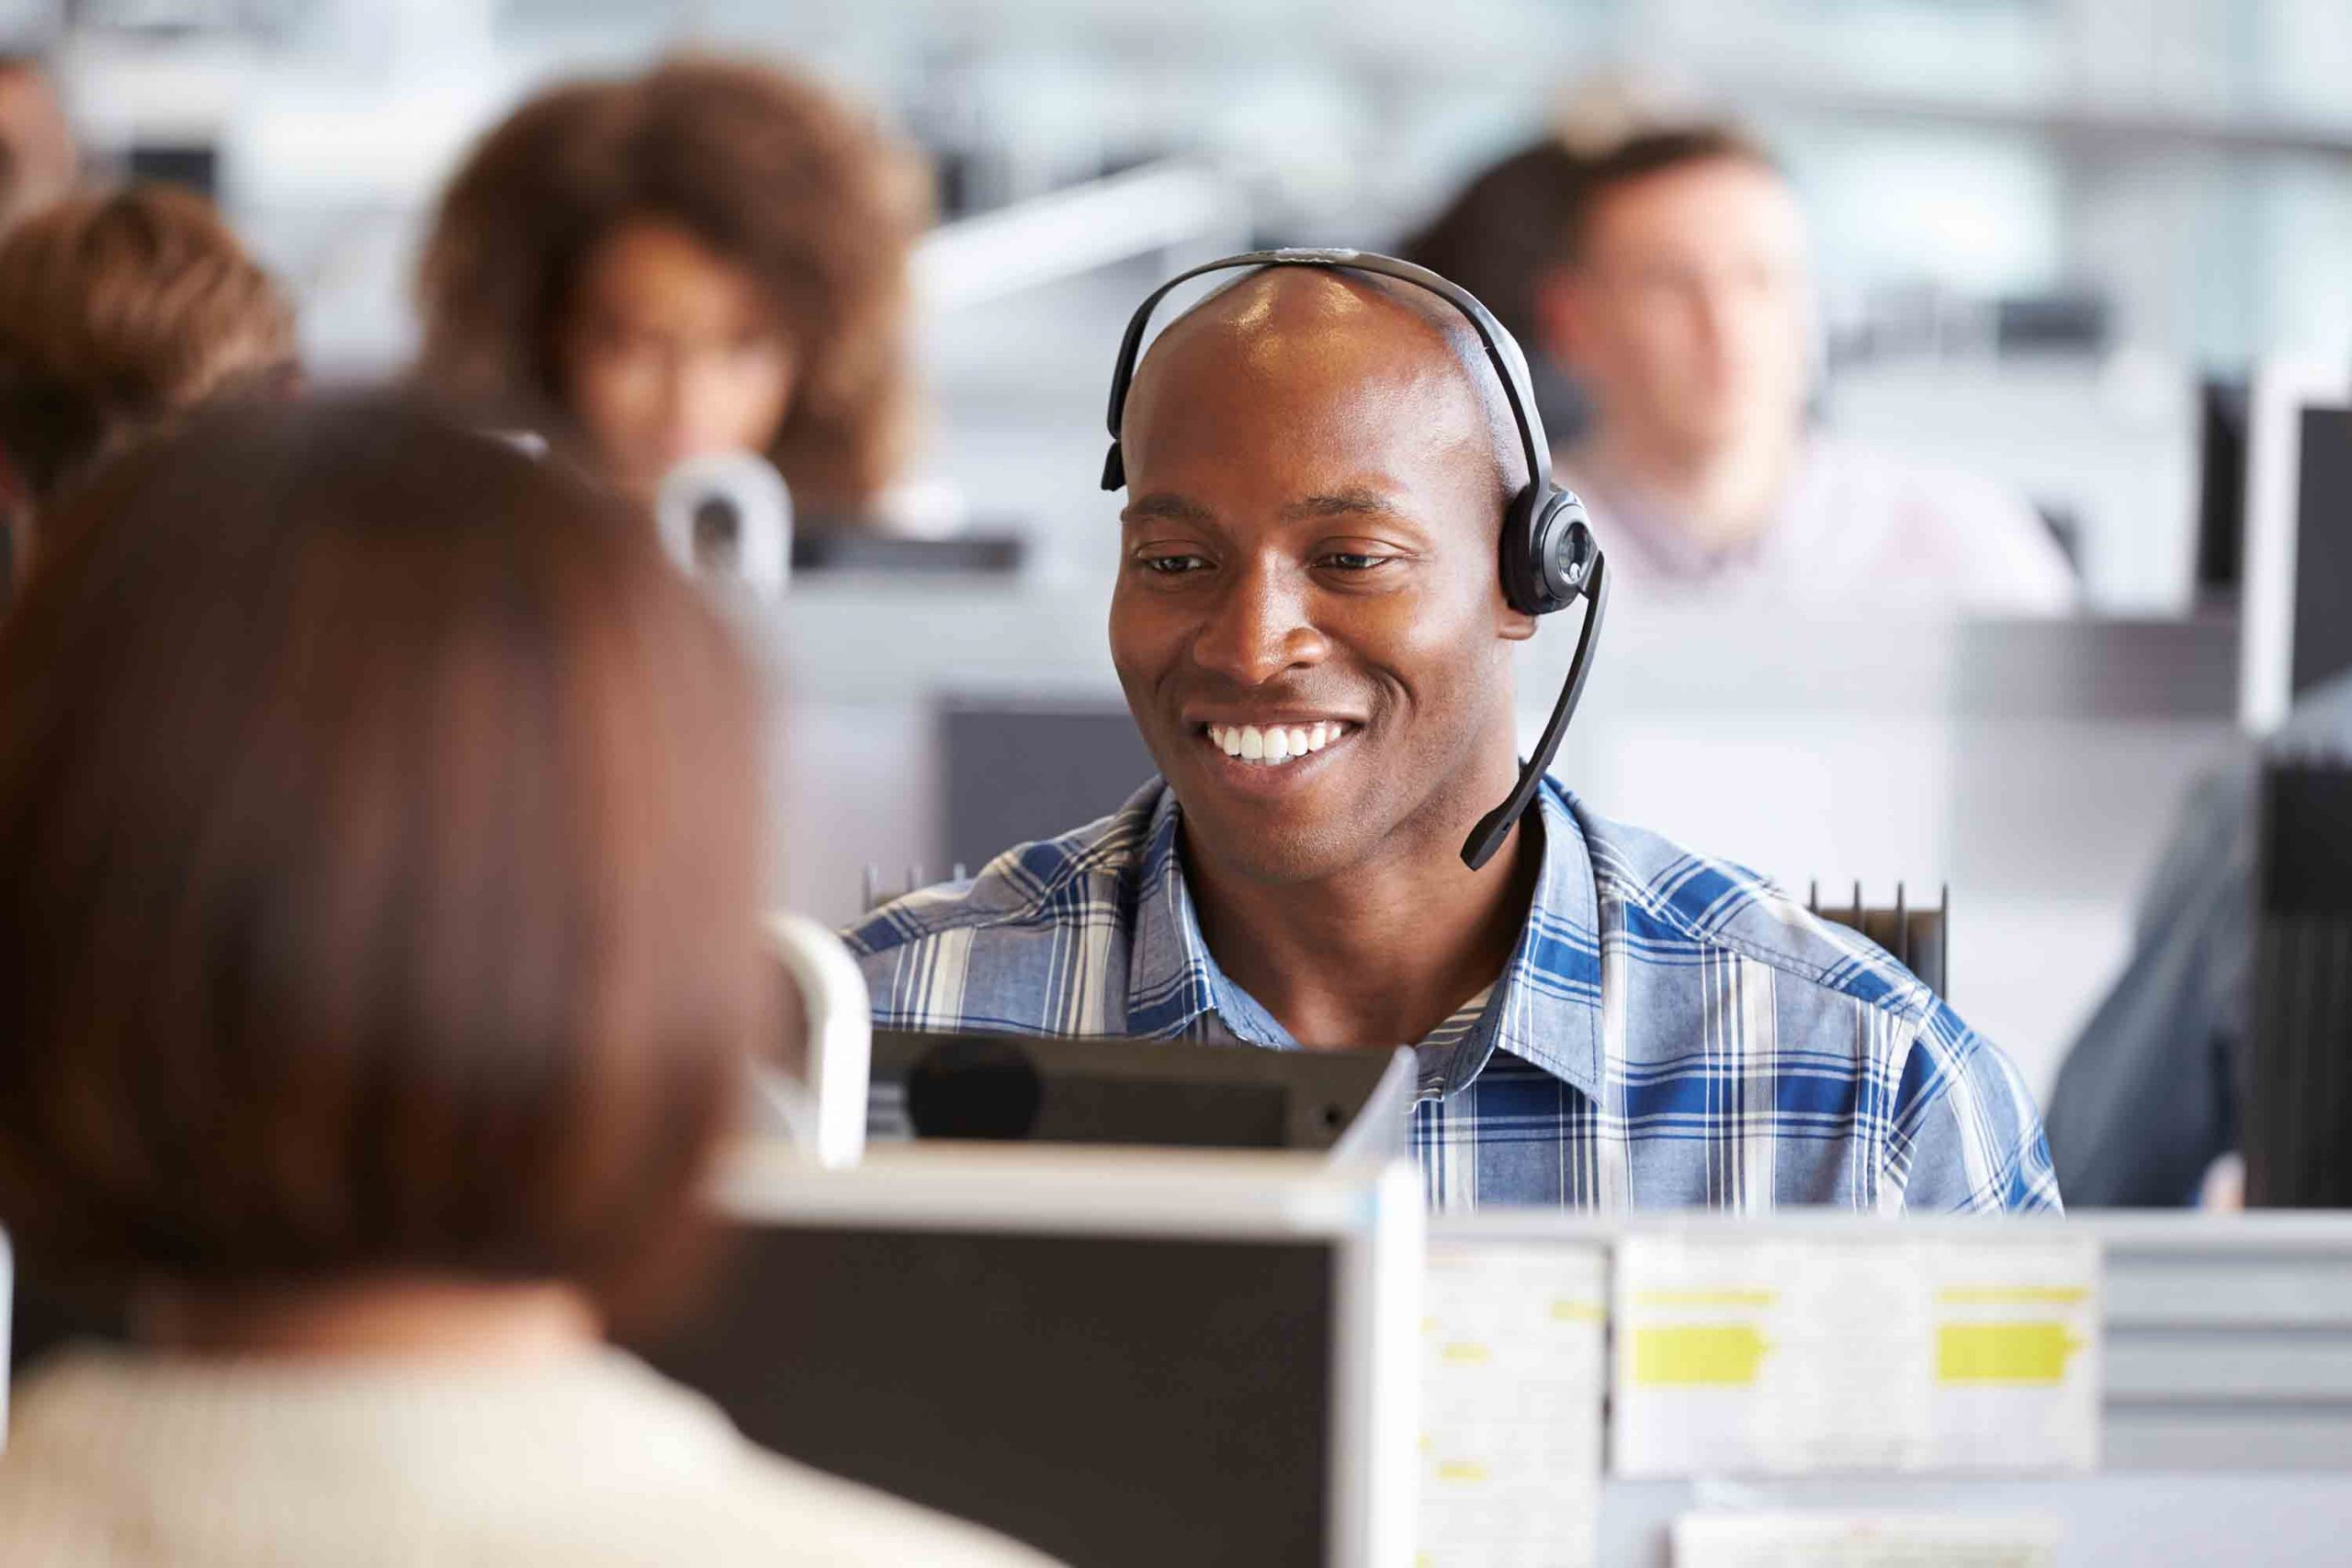 South Africa's BPO sector surges on the back of global recovery